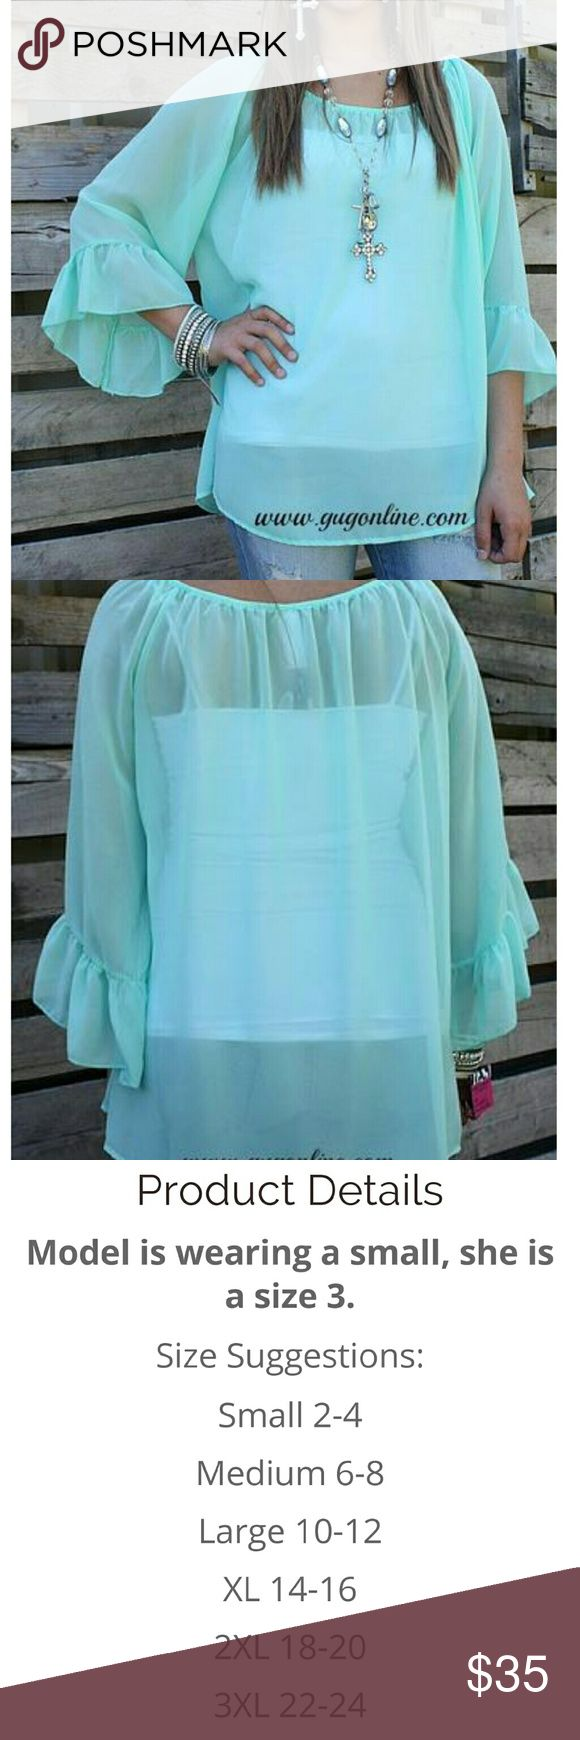 Giddy up glamour feeling the breeze top Mint Feeling the breeze giddy up glamour sheer top brand new with tags size 3x (22/24) giddy up glamour Tops Blouses